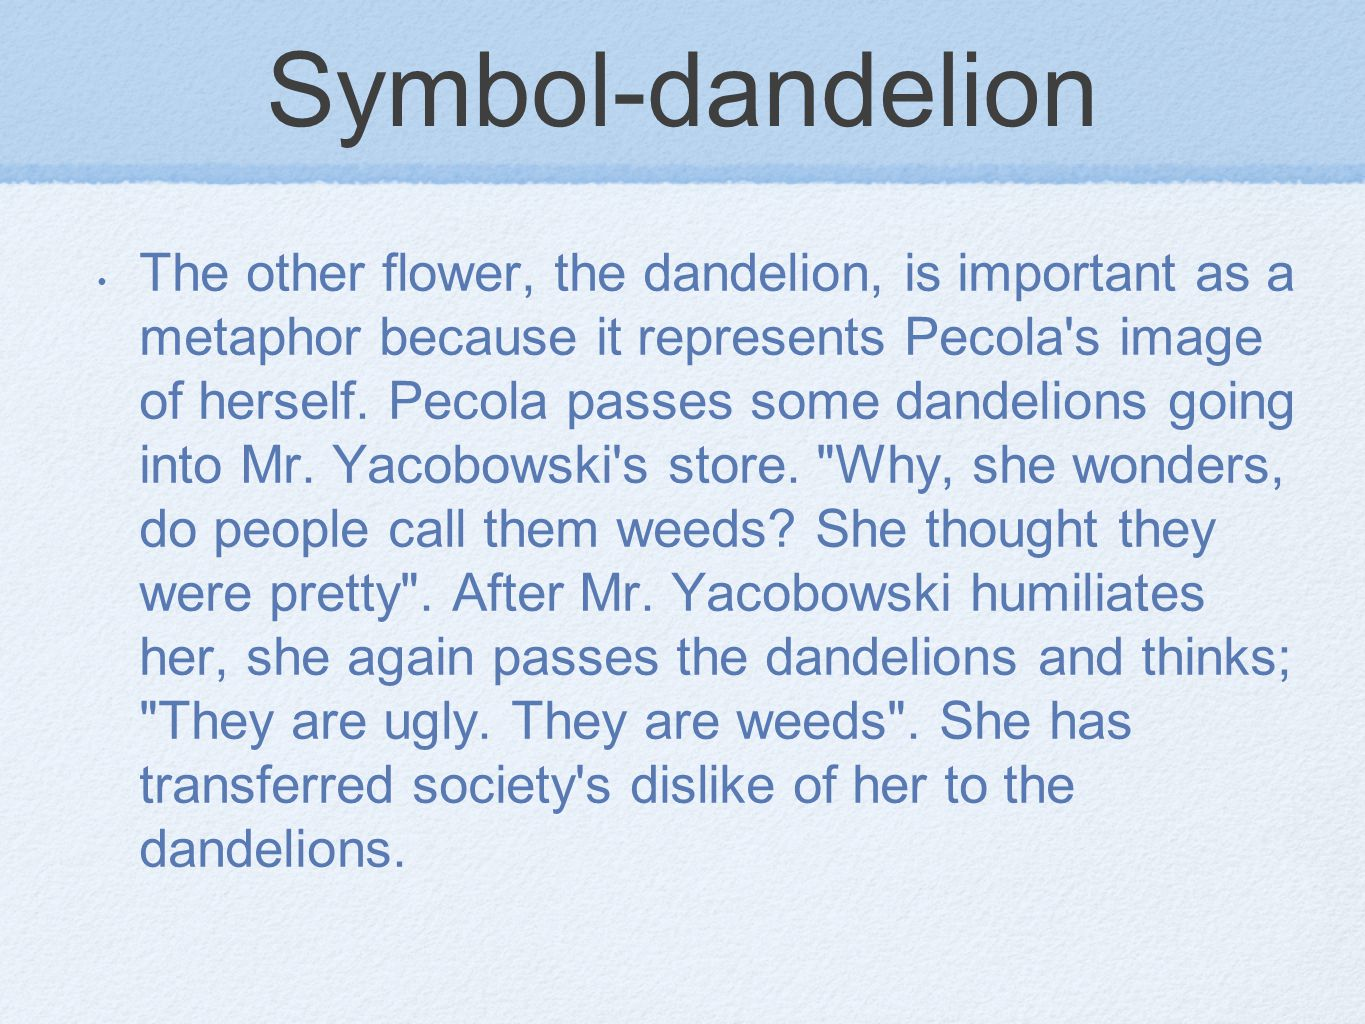 Symbol-dandelion The other flower, the dandelion, is important as a metaphor because it represents Pecola s image of herself.